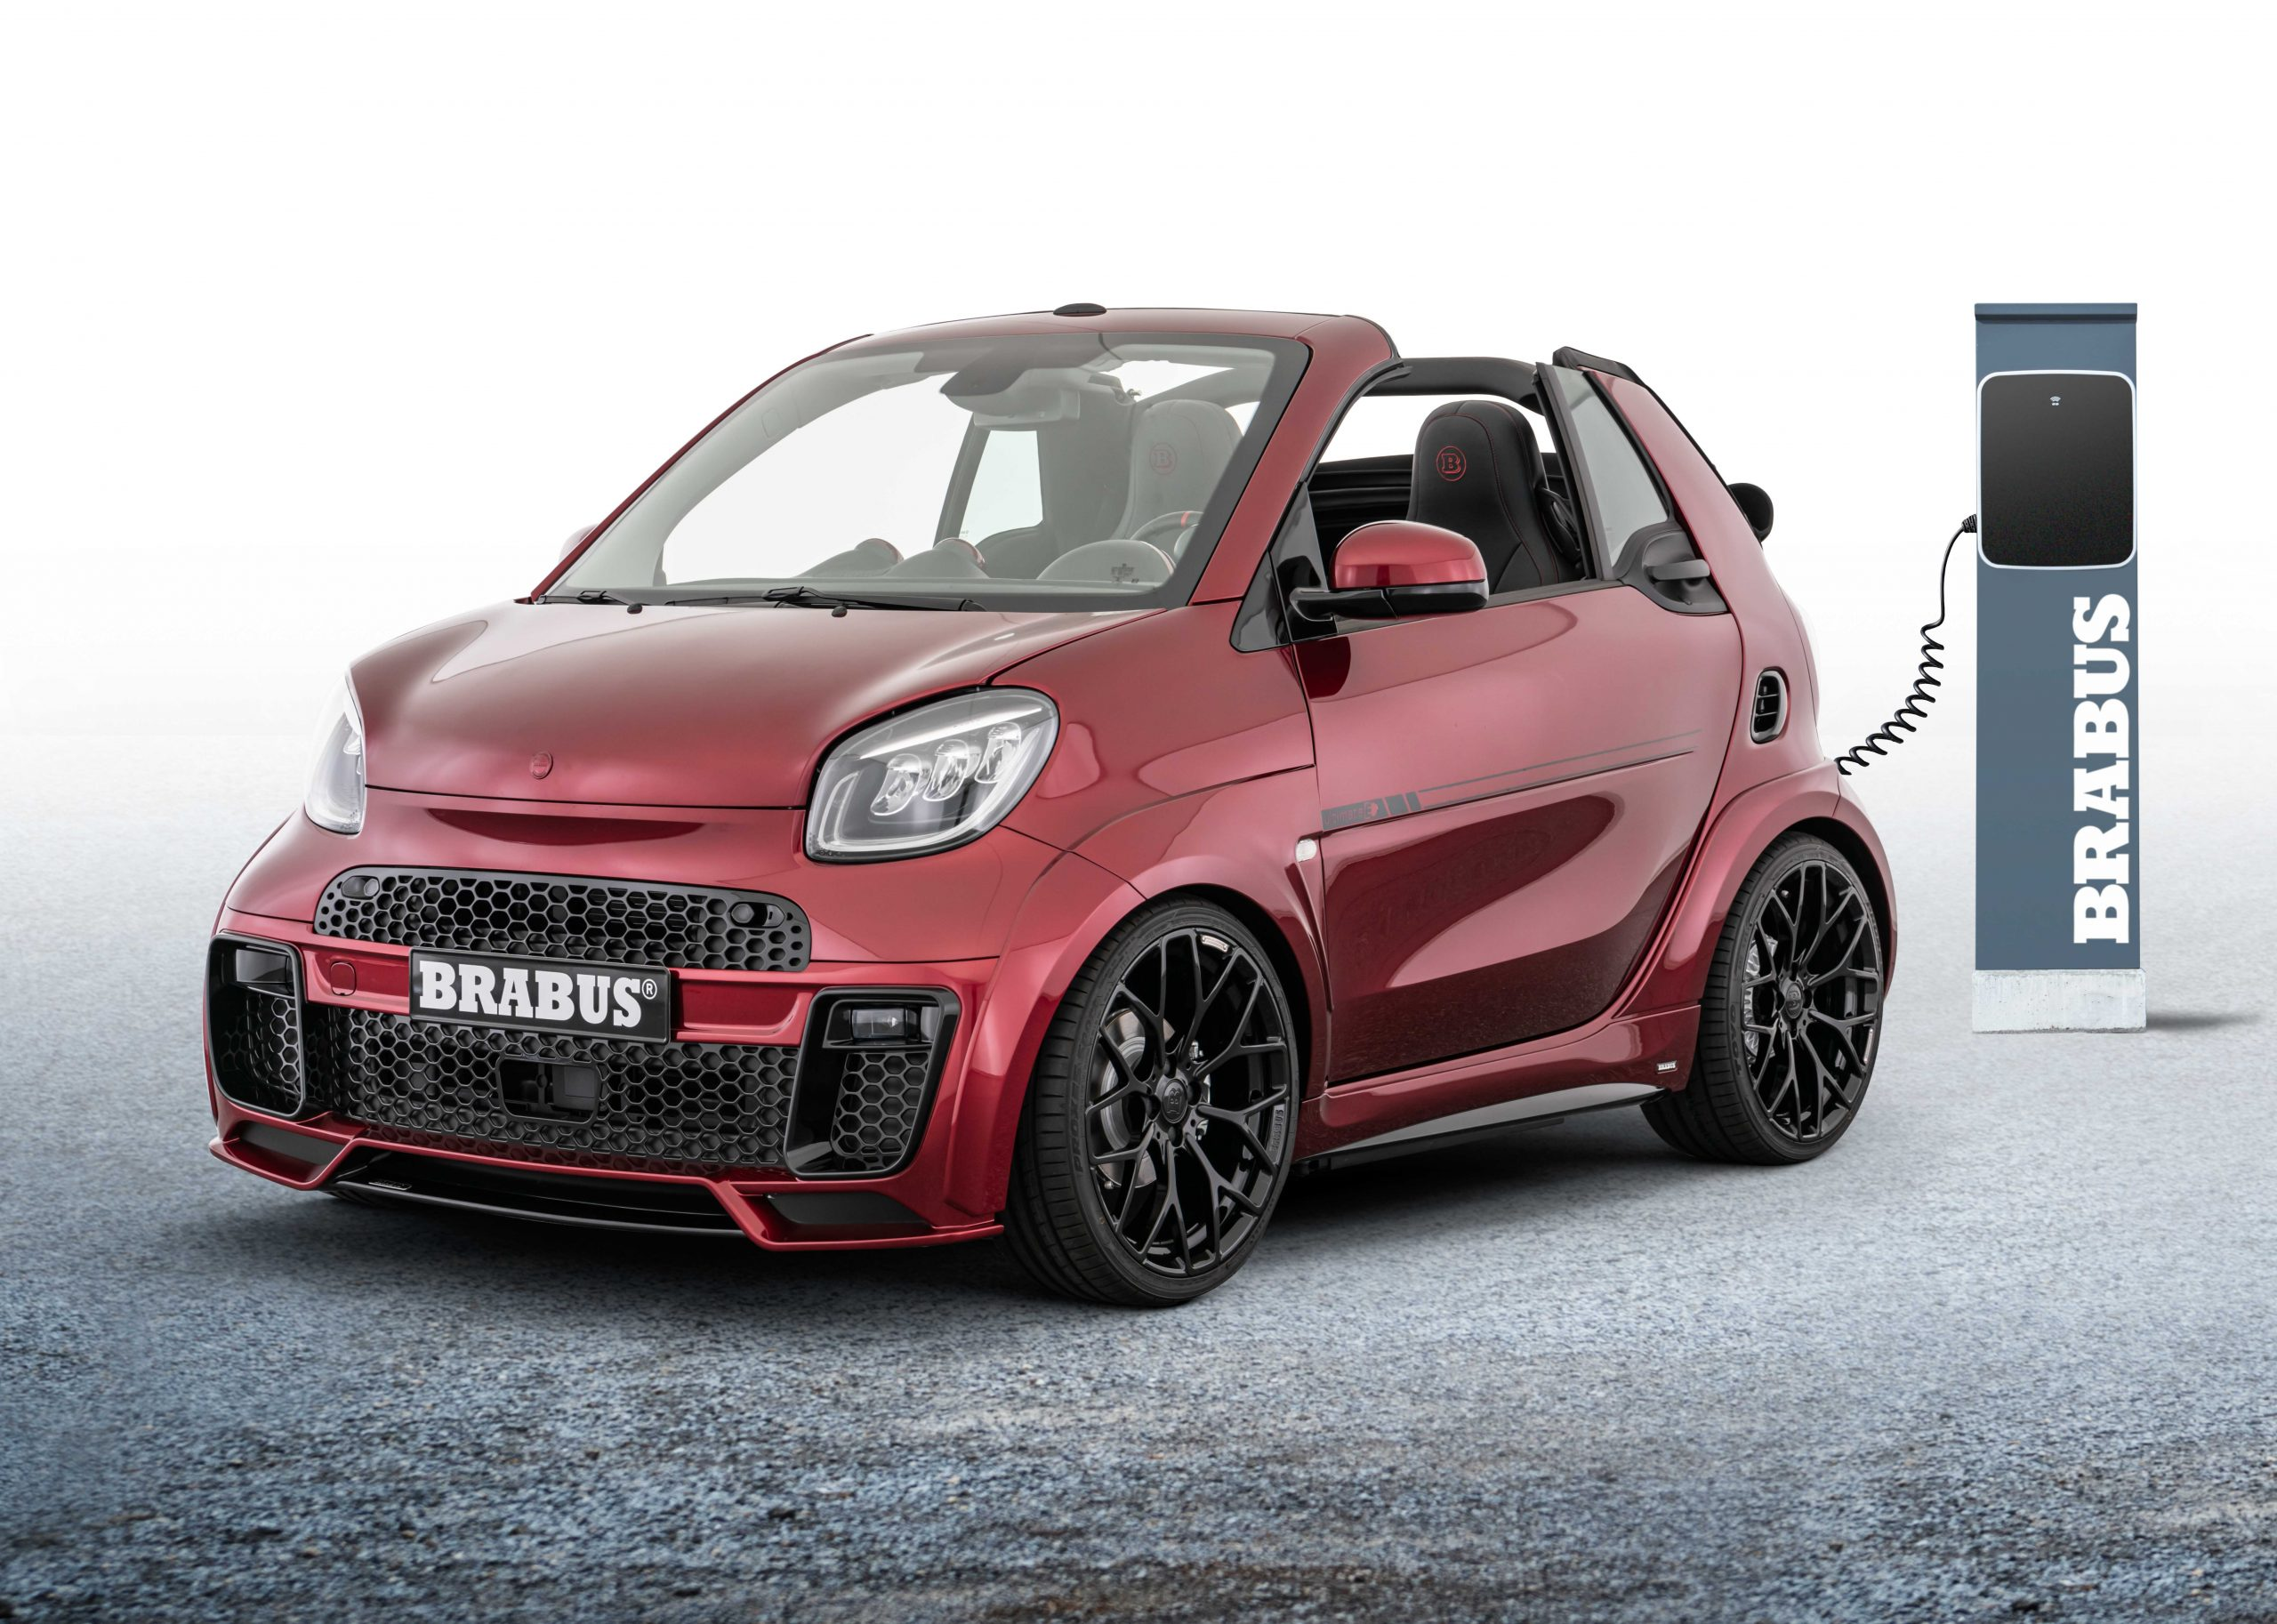 BRABUS Ultimate E Facelift – Candy red metallic